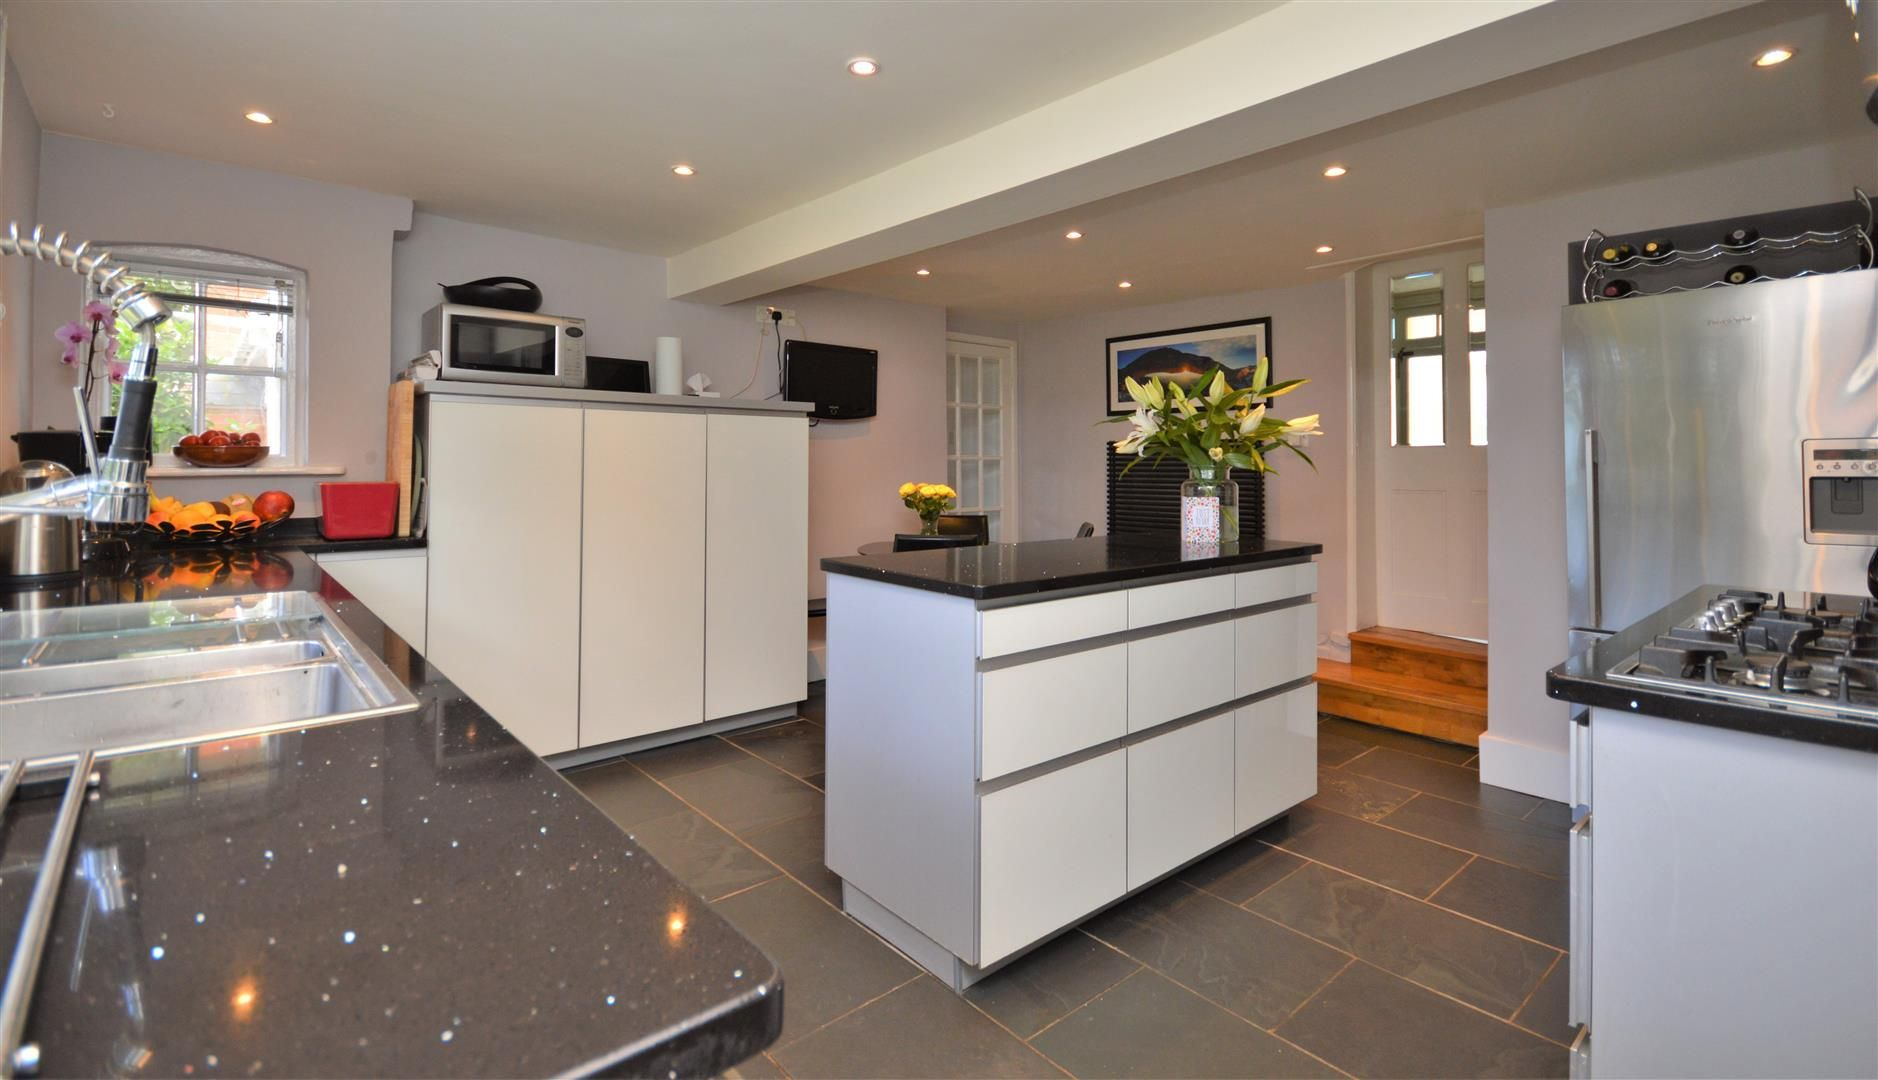 5 bed detached for sale in Stretton Sugwas  - Property Image 16